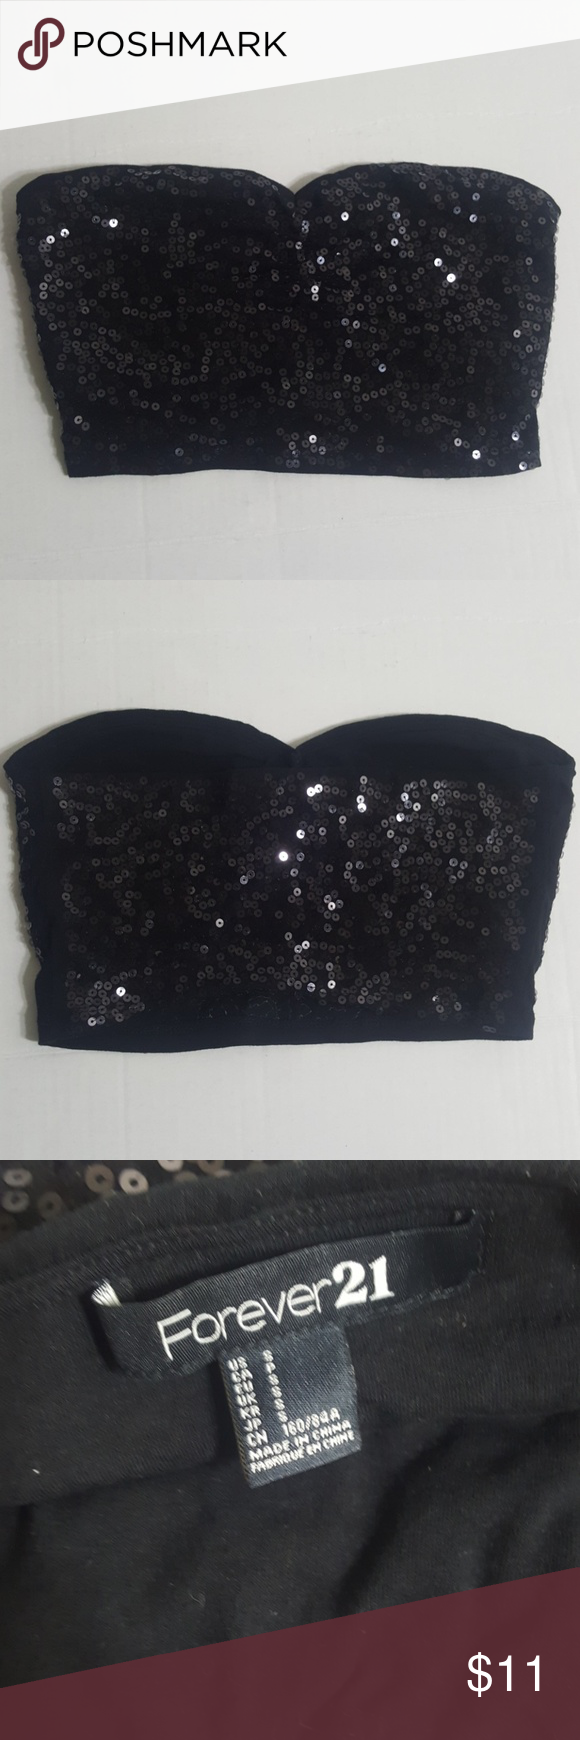 Medina Crop Top: Forever 21 Top Black Size S Sequence Tupe Top Armpit To